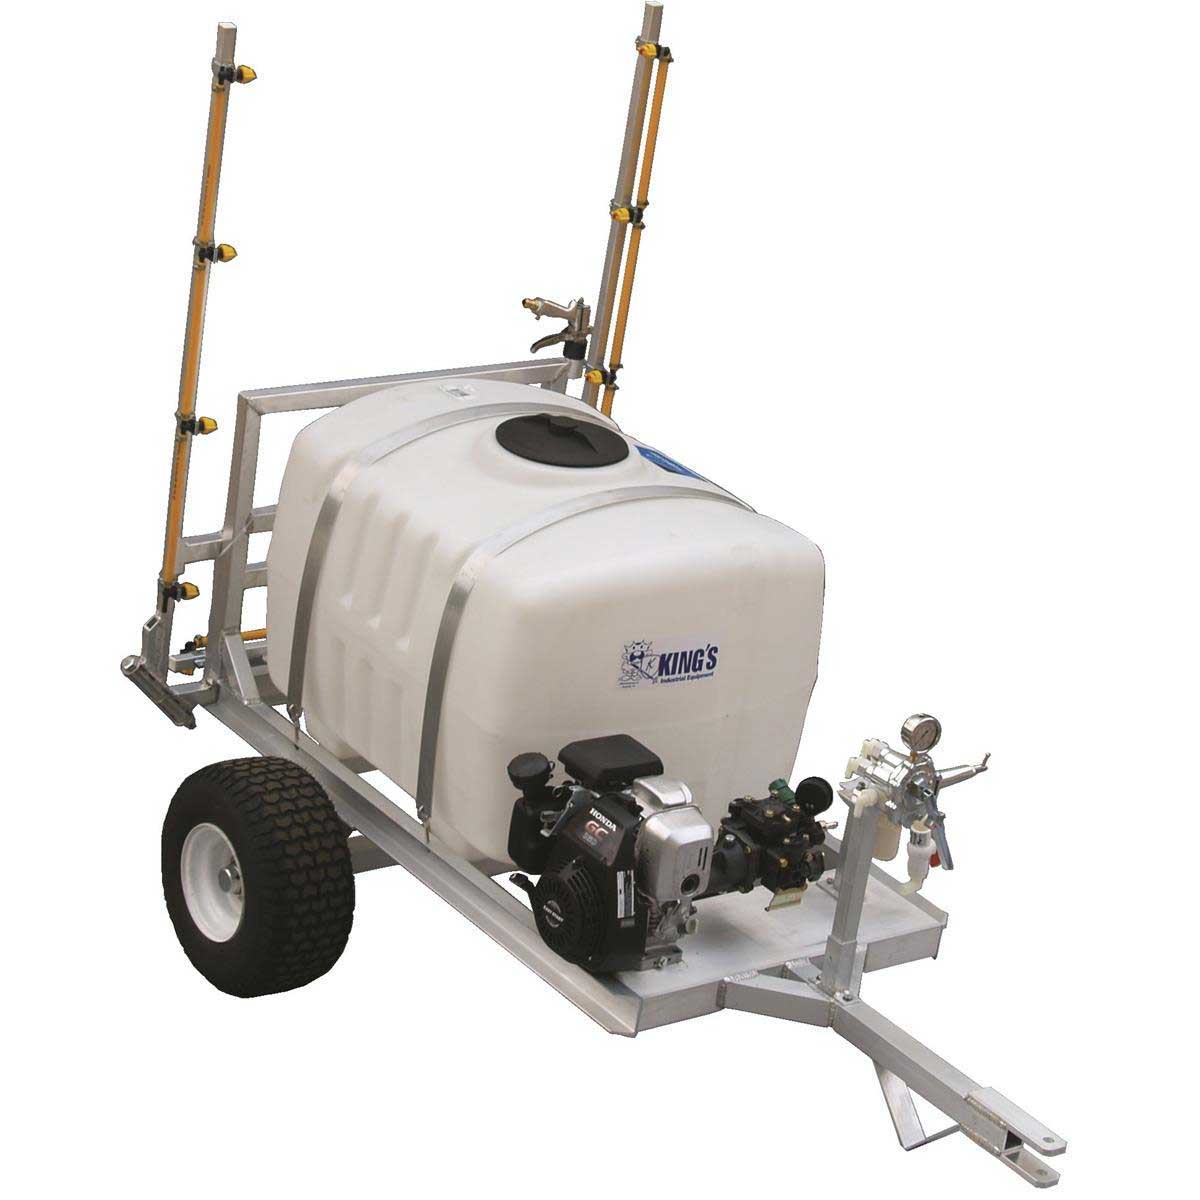 100-gal. Two-Wheel Sprayer with 12'L Boom from Kings Sprayers